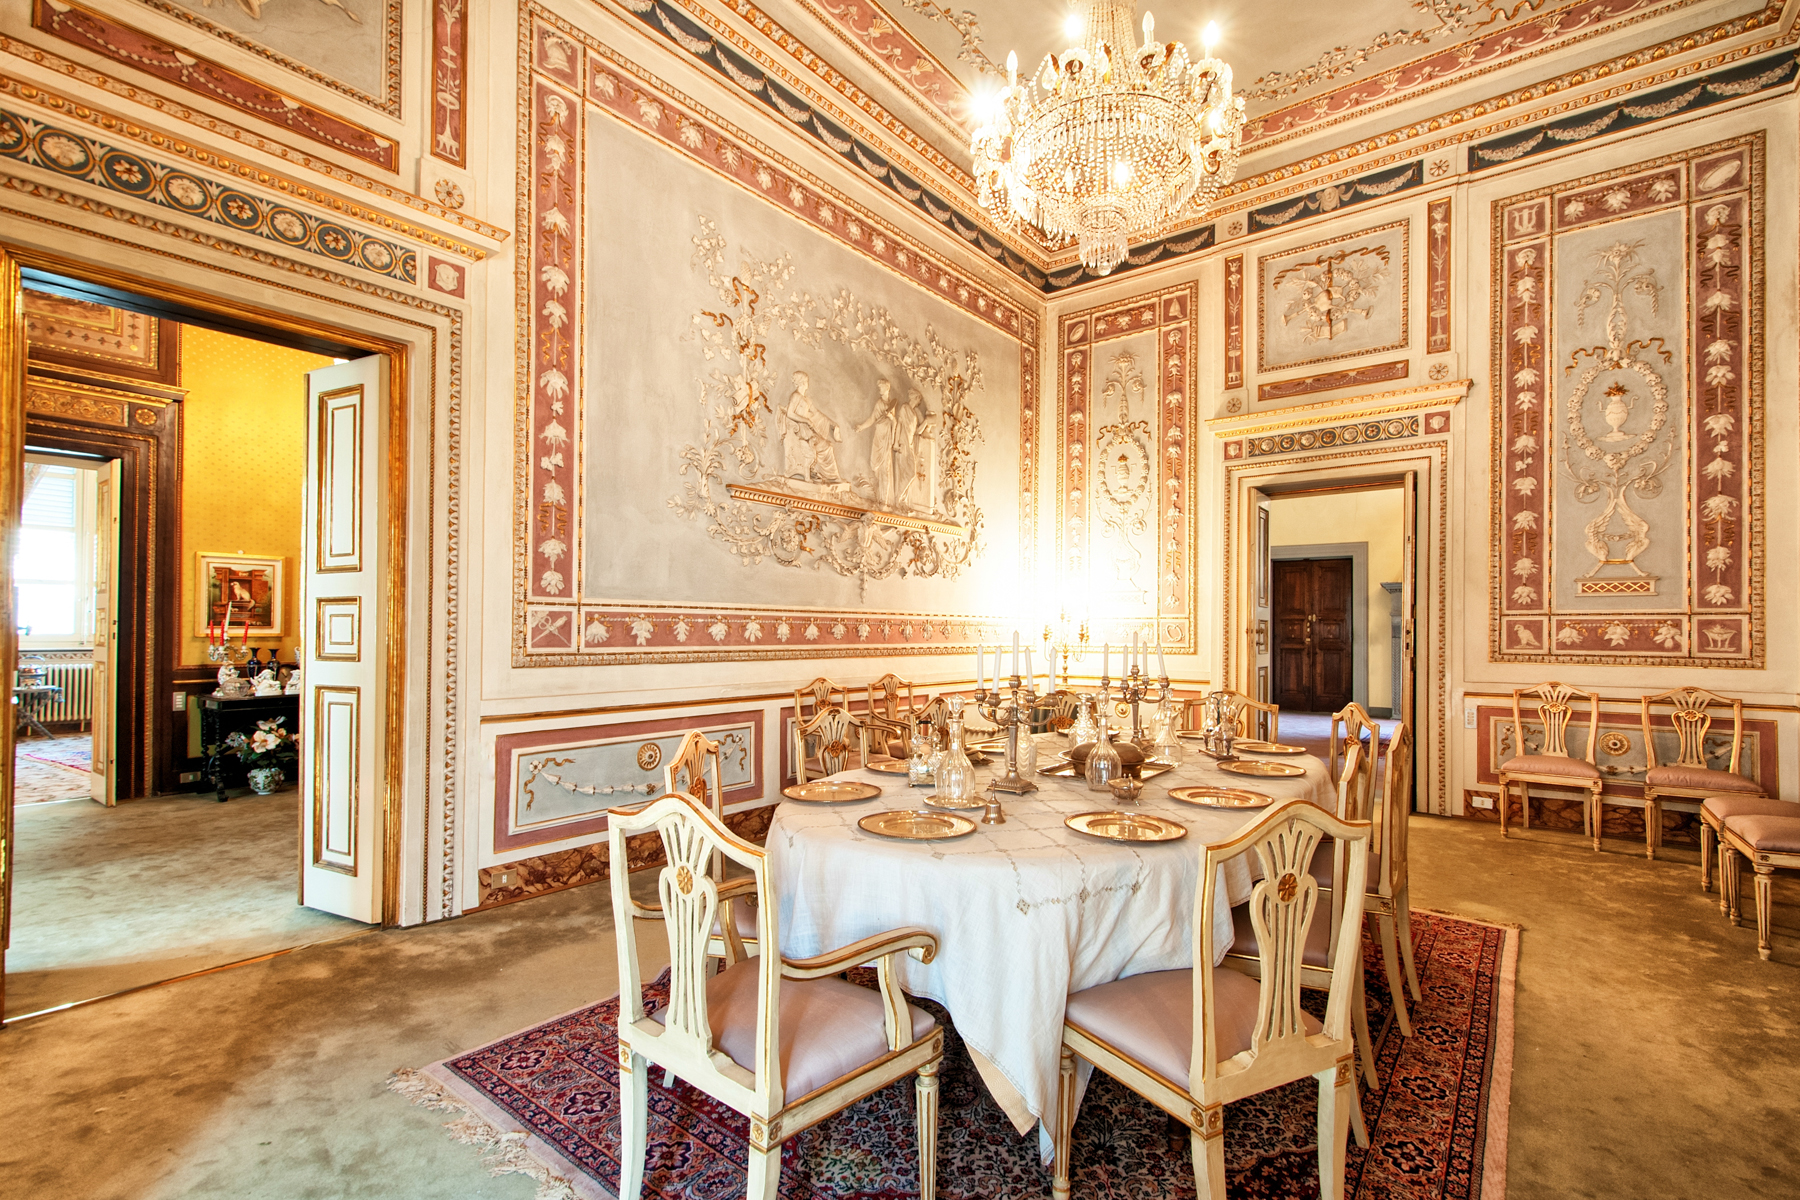 Apartment for Sale at Elegant apartment in historical building Centro Storico, Lucca, Lucca Italy